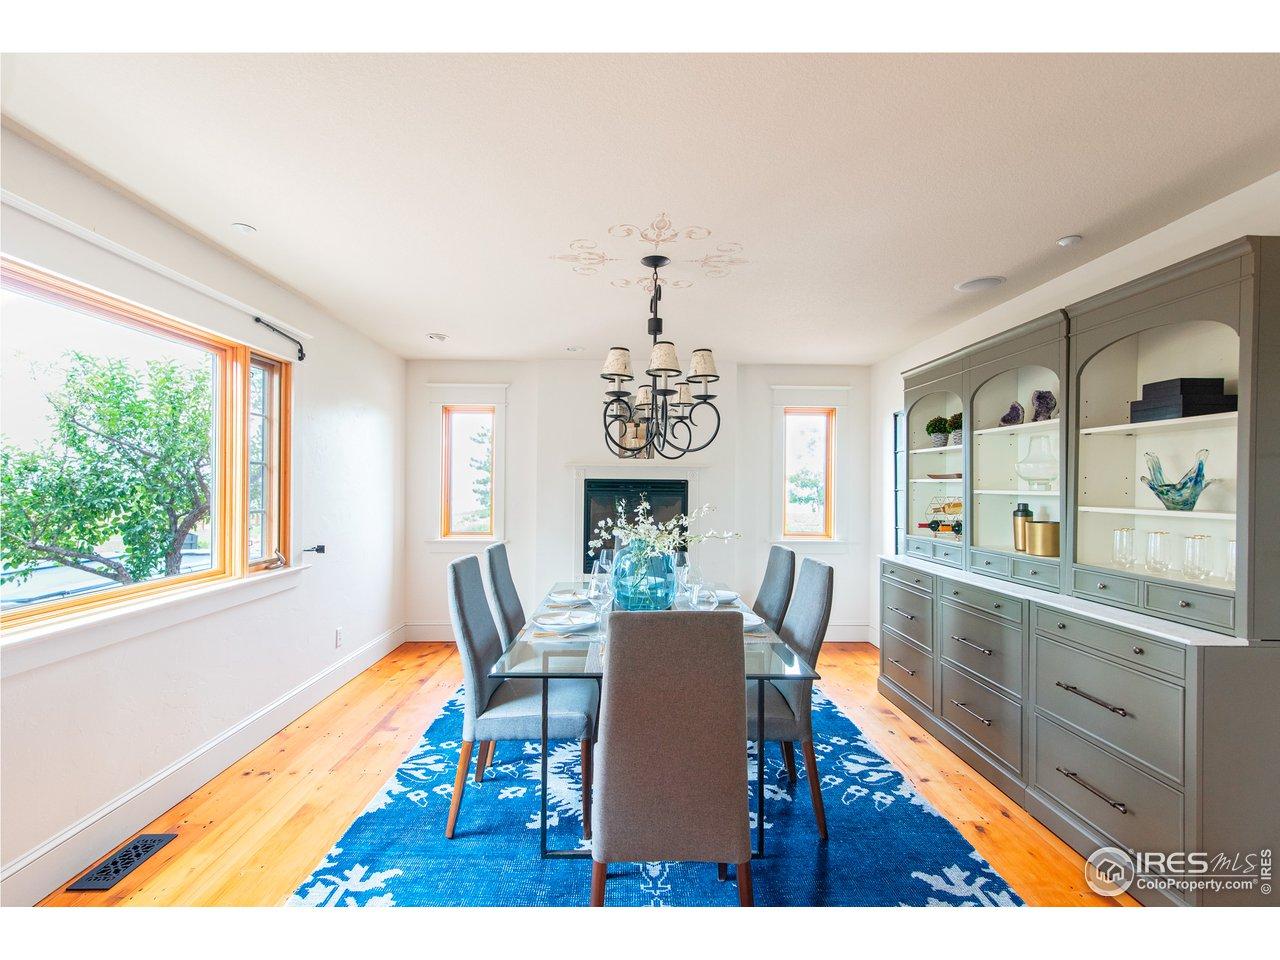 Dining Room with large windows